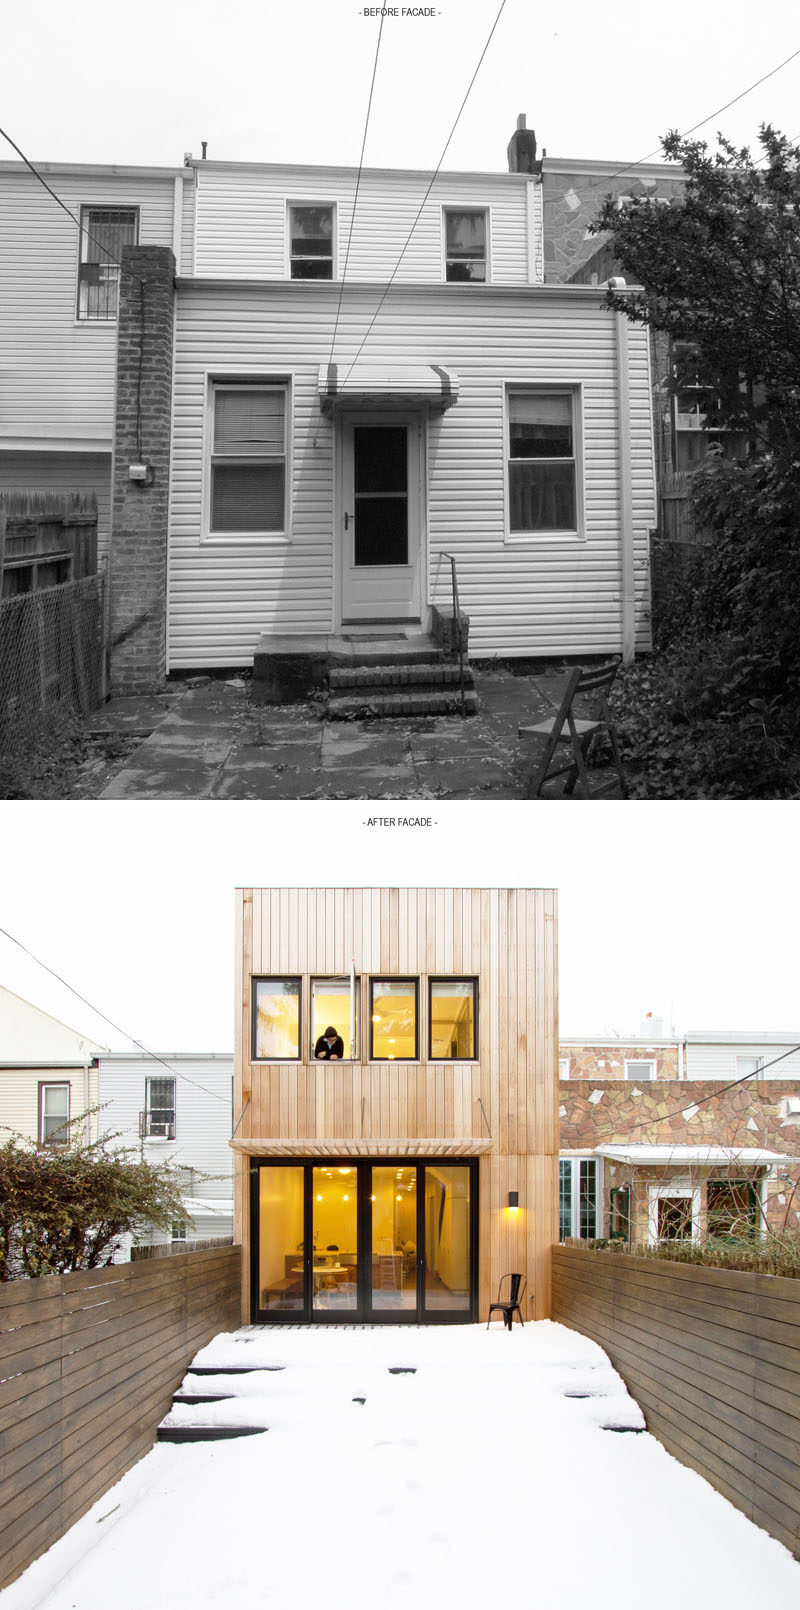 House Renovation Ideas 17 Inspirational Before After Projects This Old Brooklyn Row